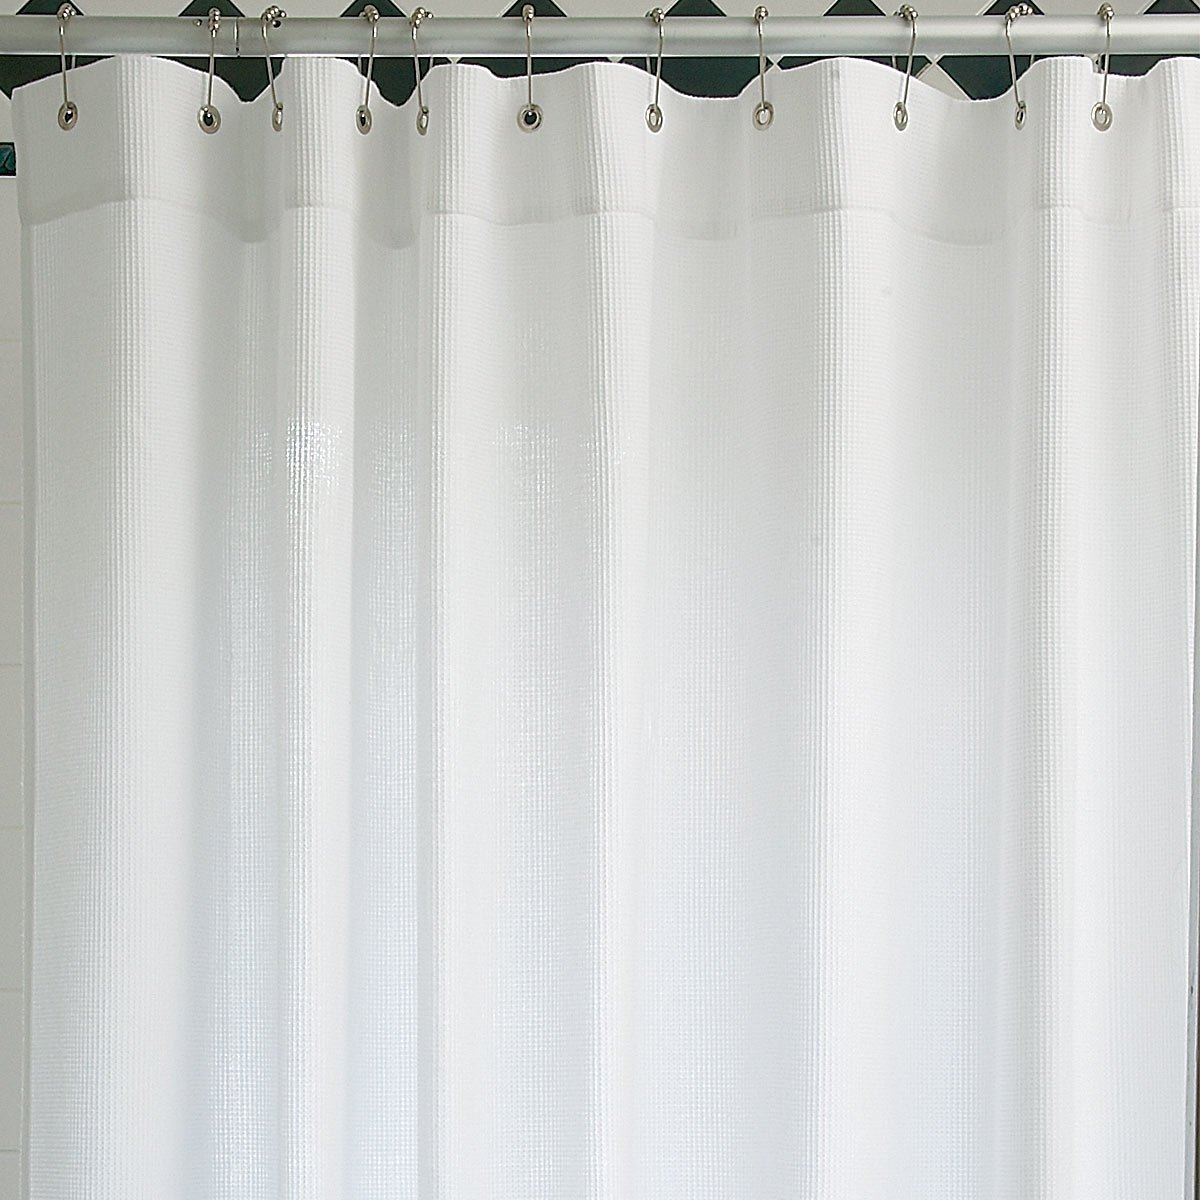 Ankara Luxury Shower Curtains Luxury Bath Accessories Luxury Pertaining To Linen Luxury Curtains (Image 1 of 15)